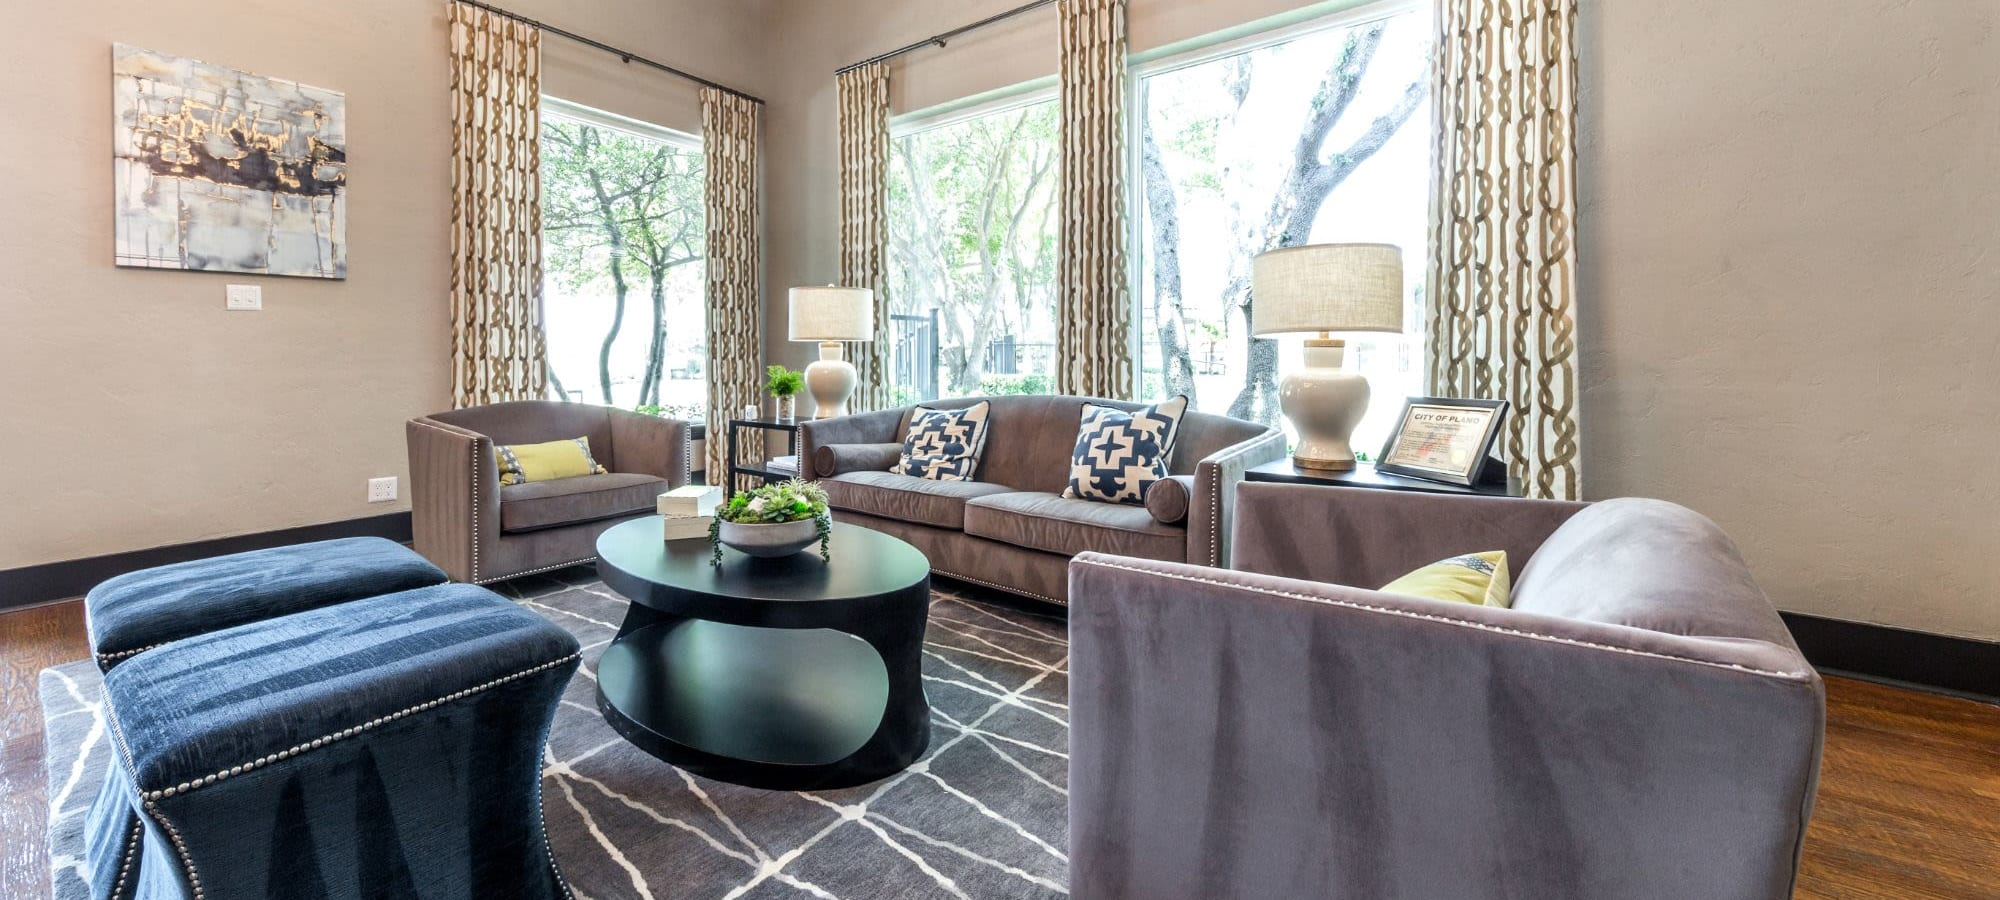 Resident information for Marquis at Legacy in Plano, Texas